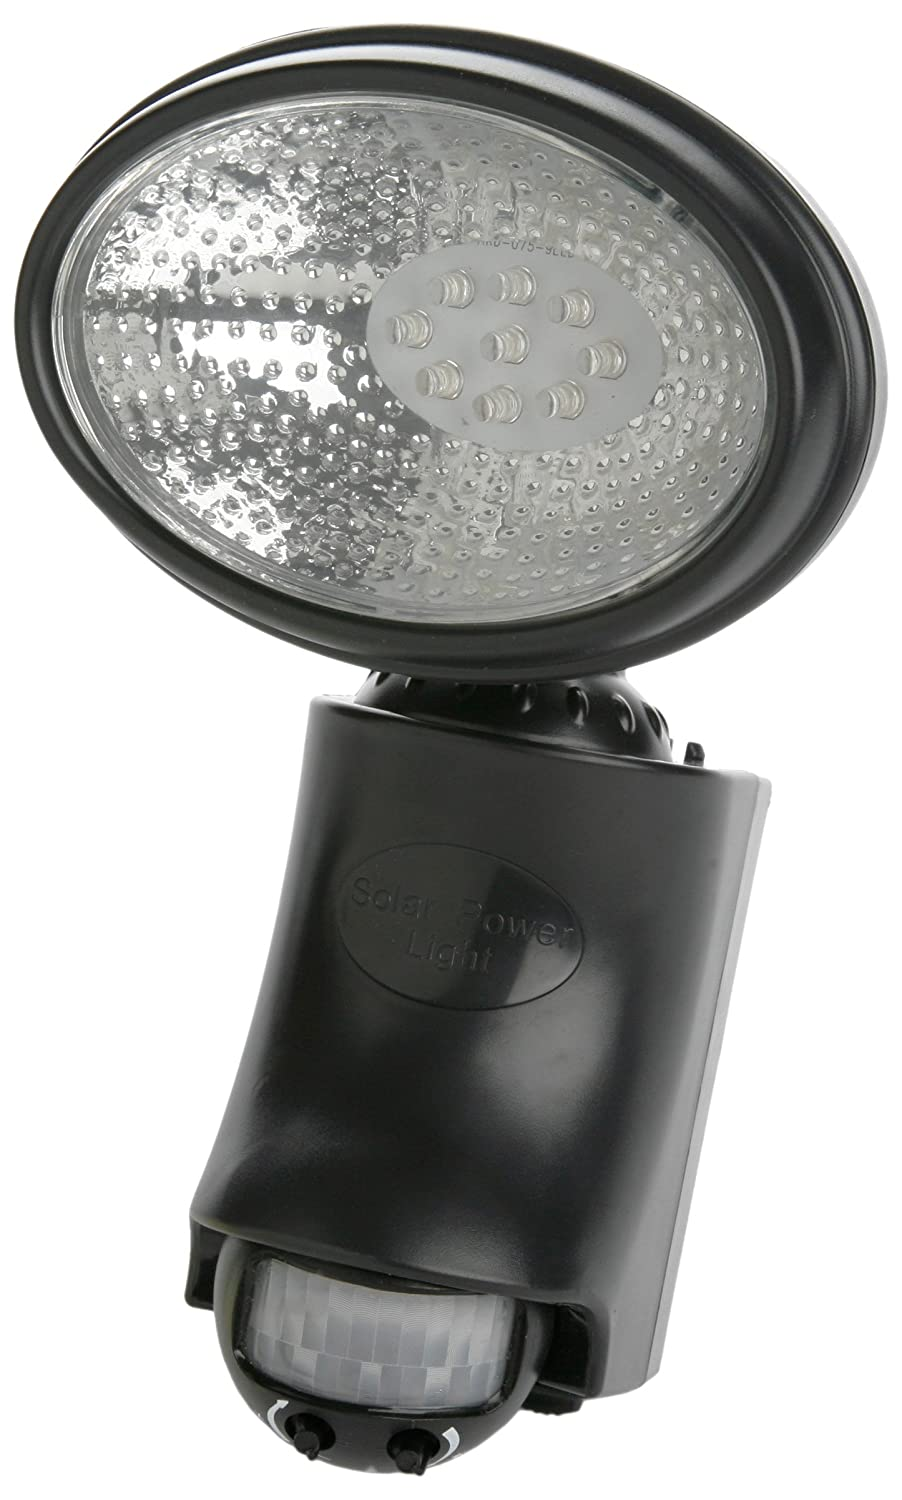 designer edge lighting. Designers Edge L950 9 LED Motion Activated Solar Floodlight Model - Flood Lighting Amazon.com Designer E